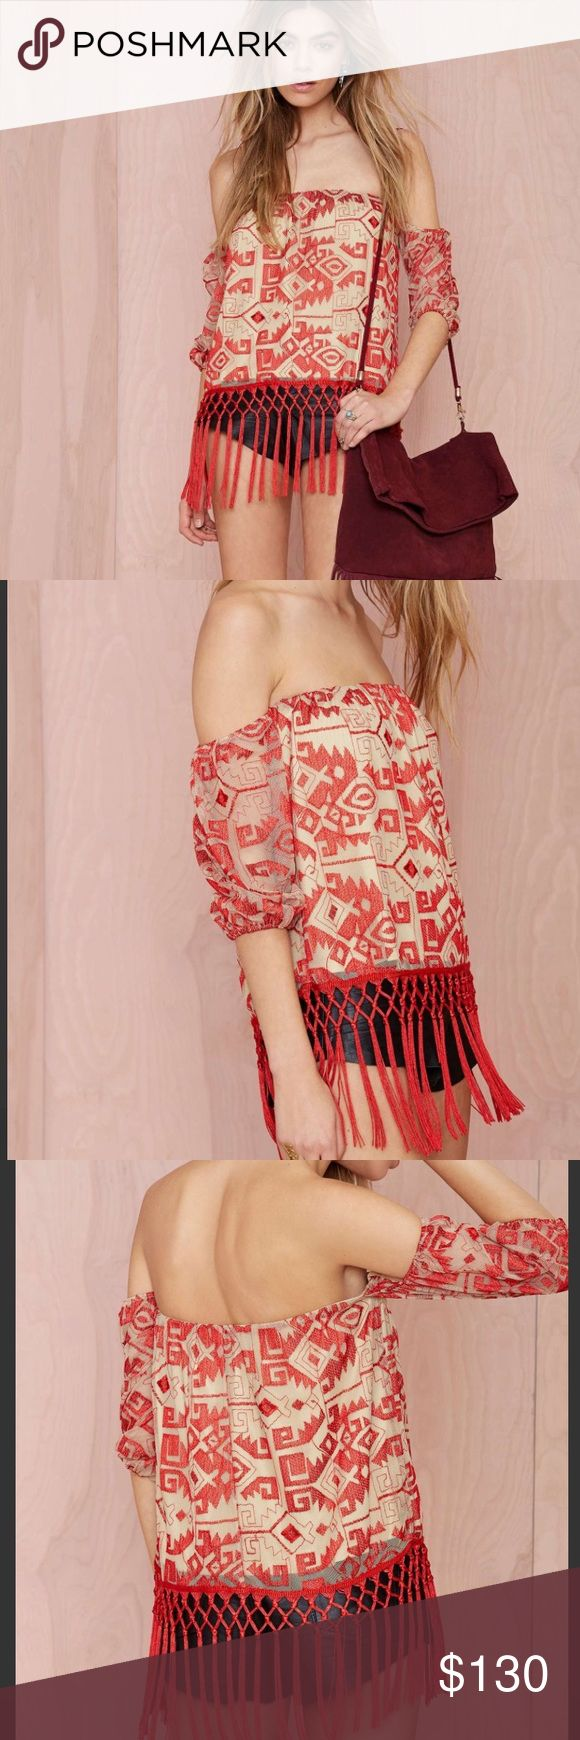 Nasty Gal Line & Dot Other World Embroidered Top Get ready to look like you just got back from the ultimate tropical vacation. The Other World Top is made in a nude mesh and features all-over red embroidery, stretch band at off-the-shoulder neckline, and fringe at hem-- perfect for showing off those moves. Partially lined, side zip closure. We love it teamed up with strappy nude heels and a wide open dance floor. By Line and Dot. Polyester/Nylon Runs true to size. Dry clean. Imported. Color…